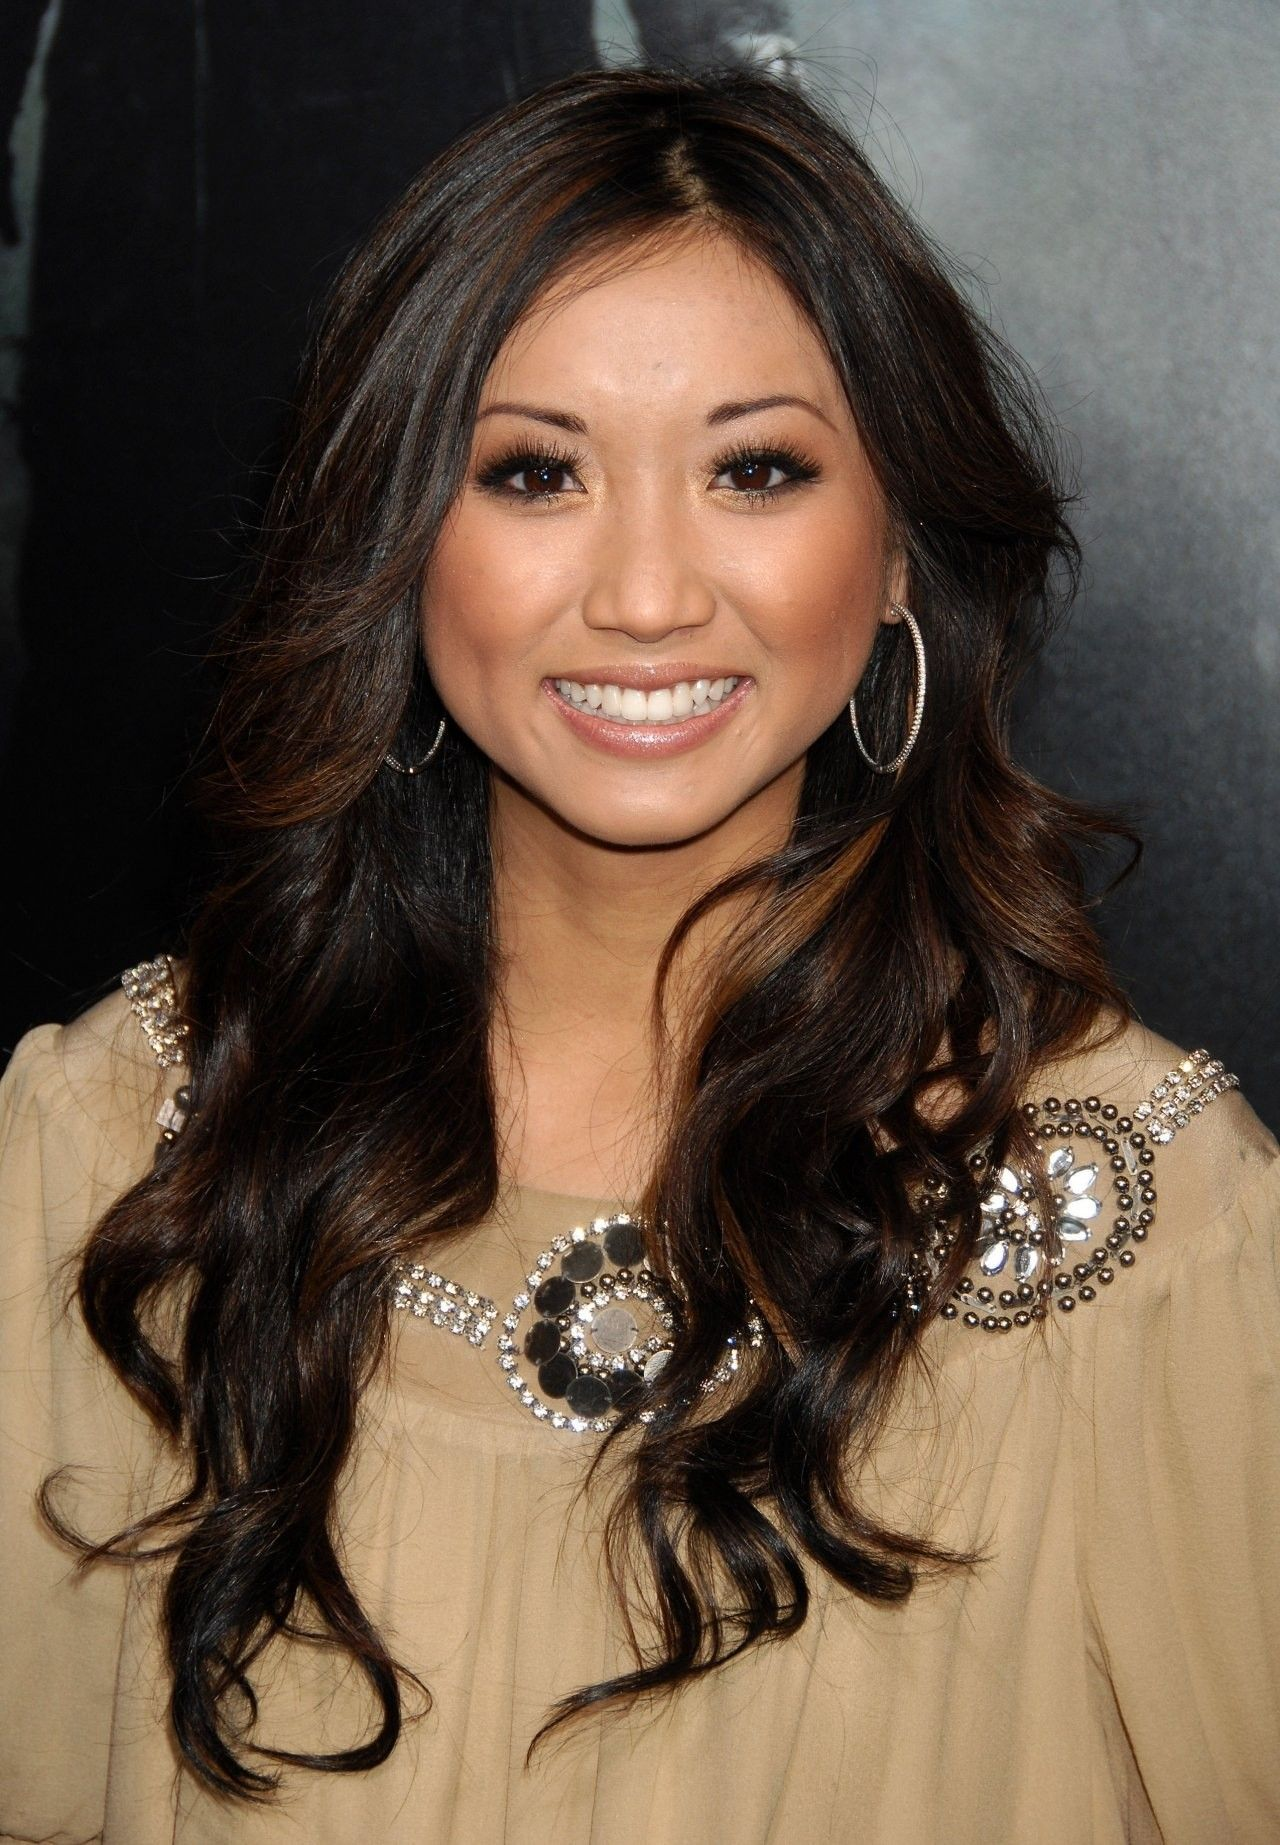 Pin By Draggman On Brenda Song Pretty Hairstyles Wedding Makeup For Brown Eyes Simple Wedding Makeup